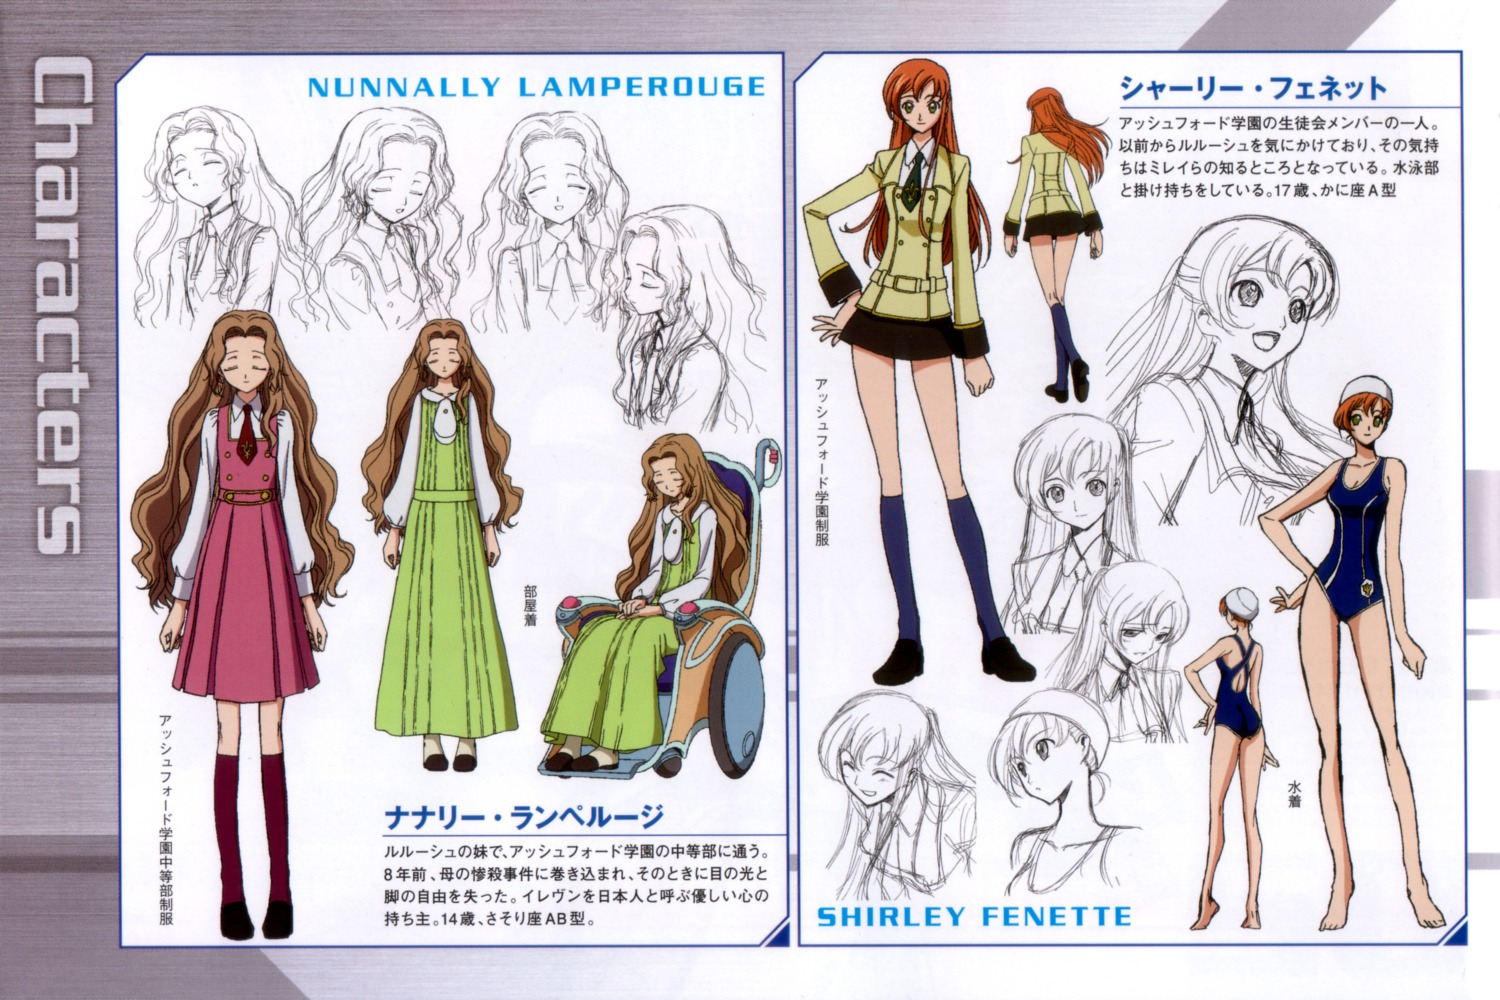 character_design code_geass kimura_takahiro nunnally_lamperouge seifuku shirley_fenette sketch swimsuits